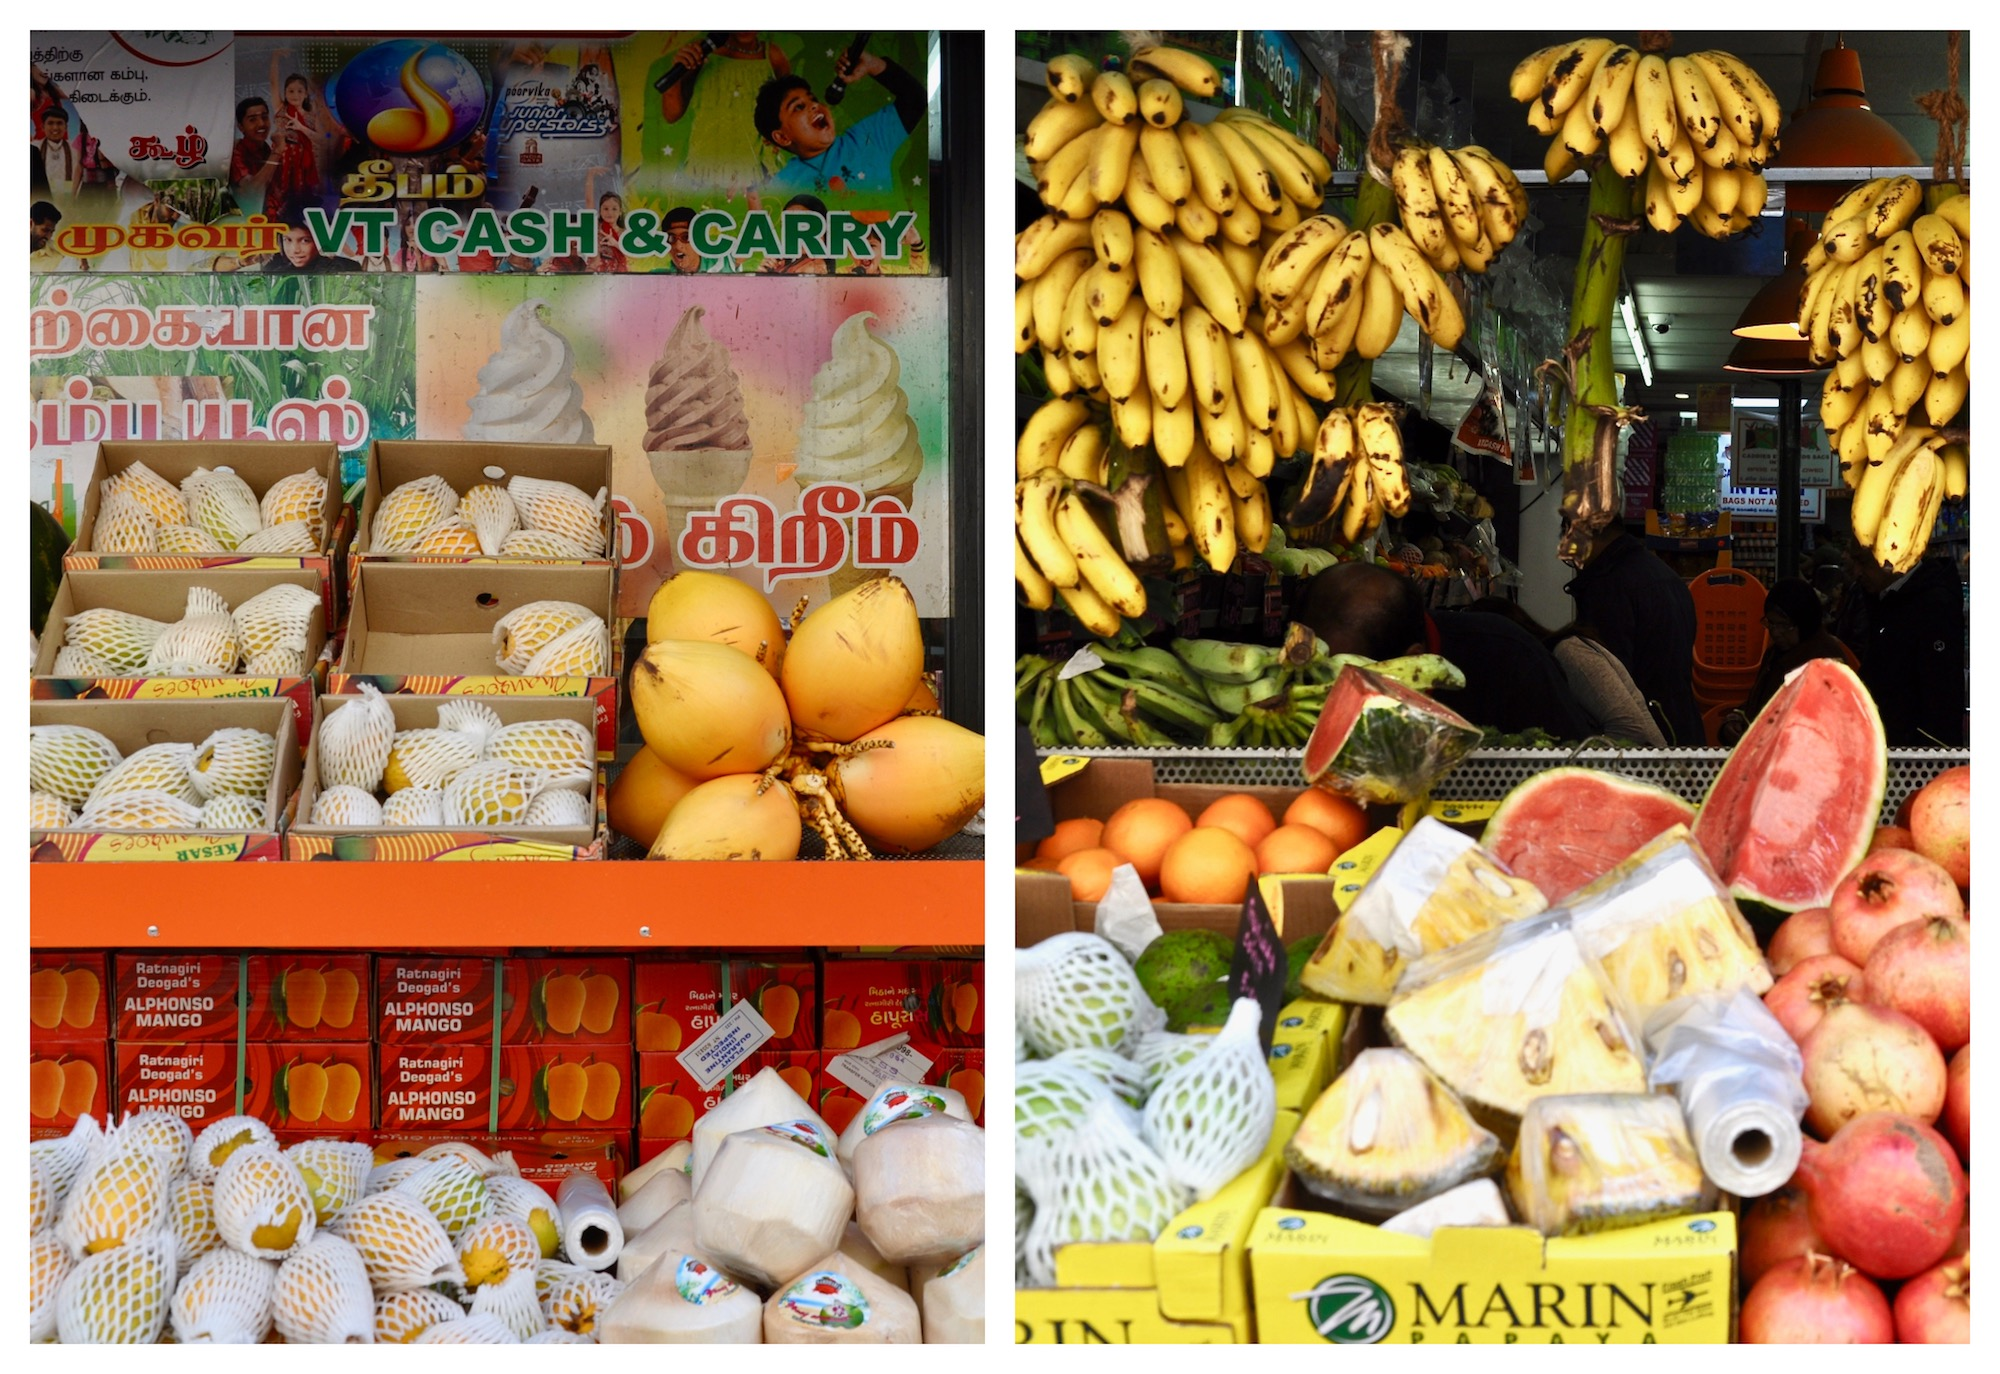 La Chapelle neighborhood in Paris has some coloful Indian food stores selling exotic fruit.